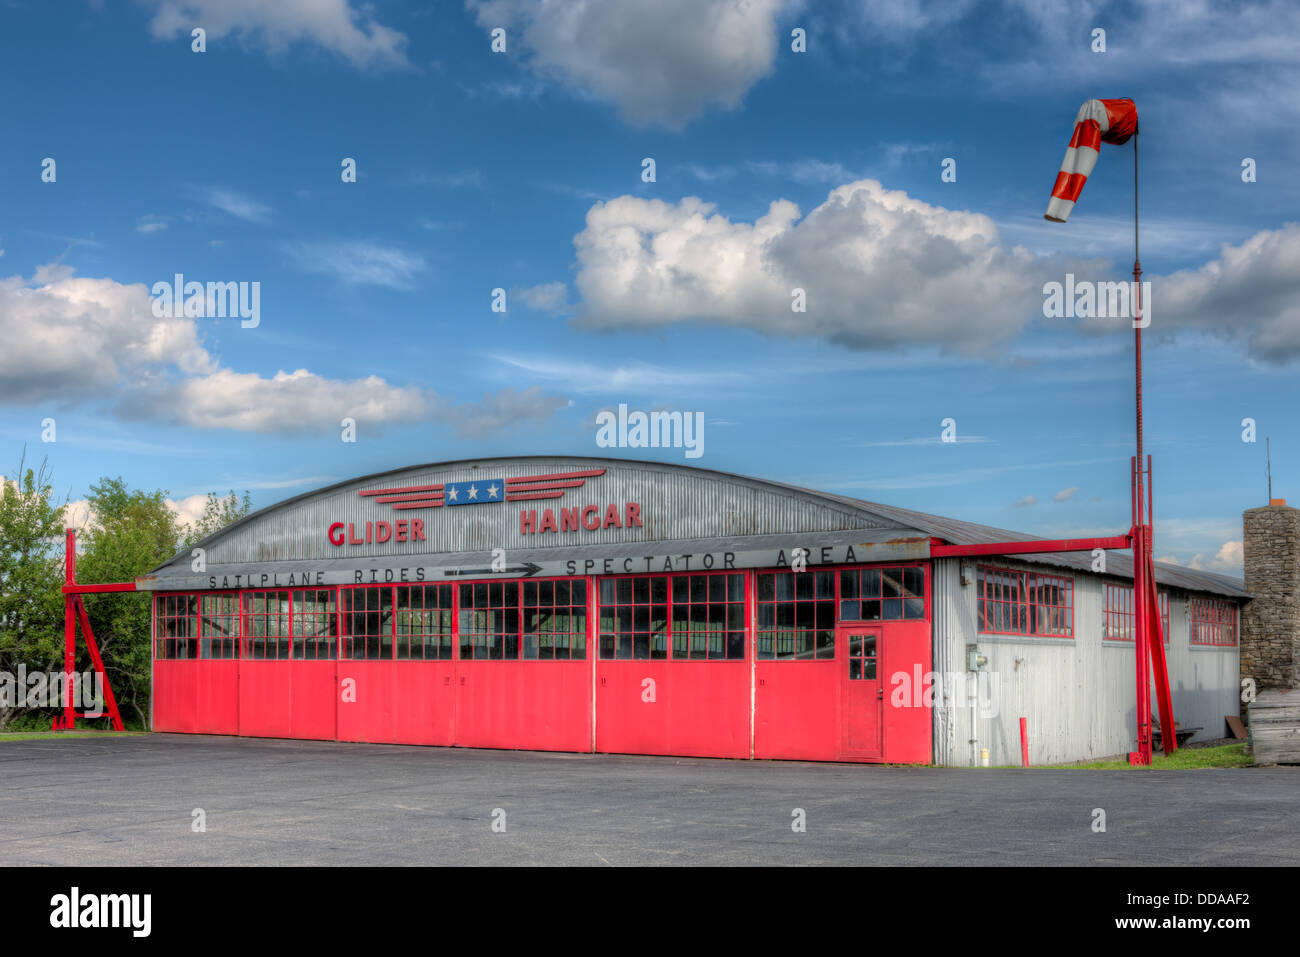 The Glider Hangar at Harris Hill Gliderport, the birthplace of soaring in the USA, located in Elmira, New York. - Stock Image